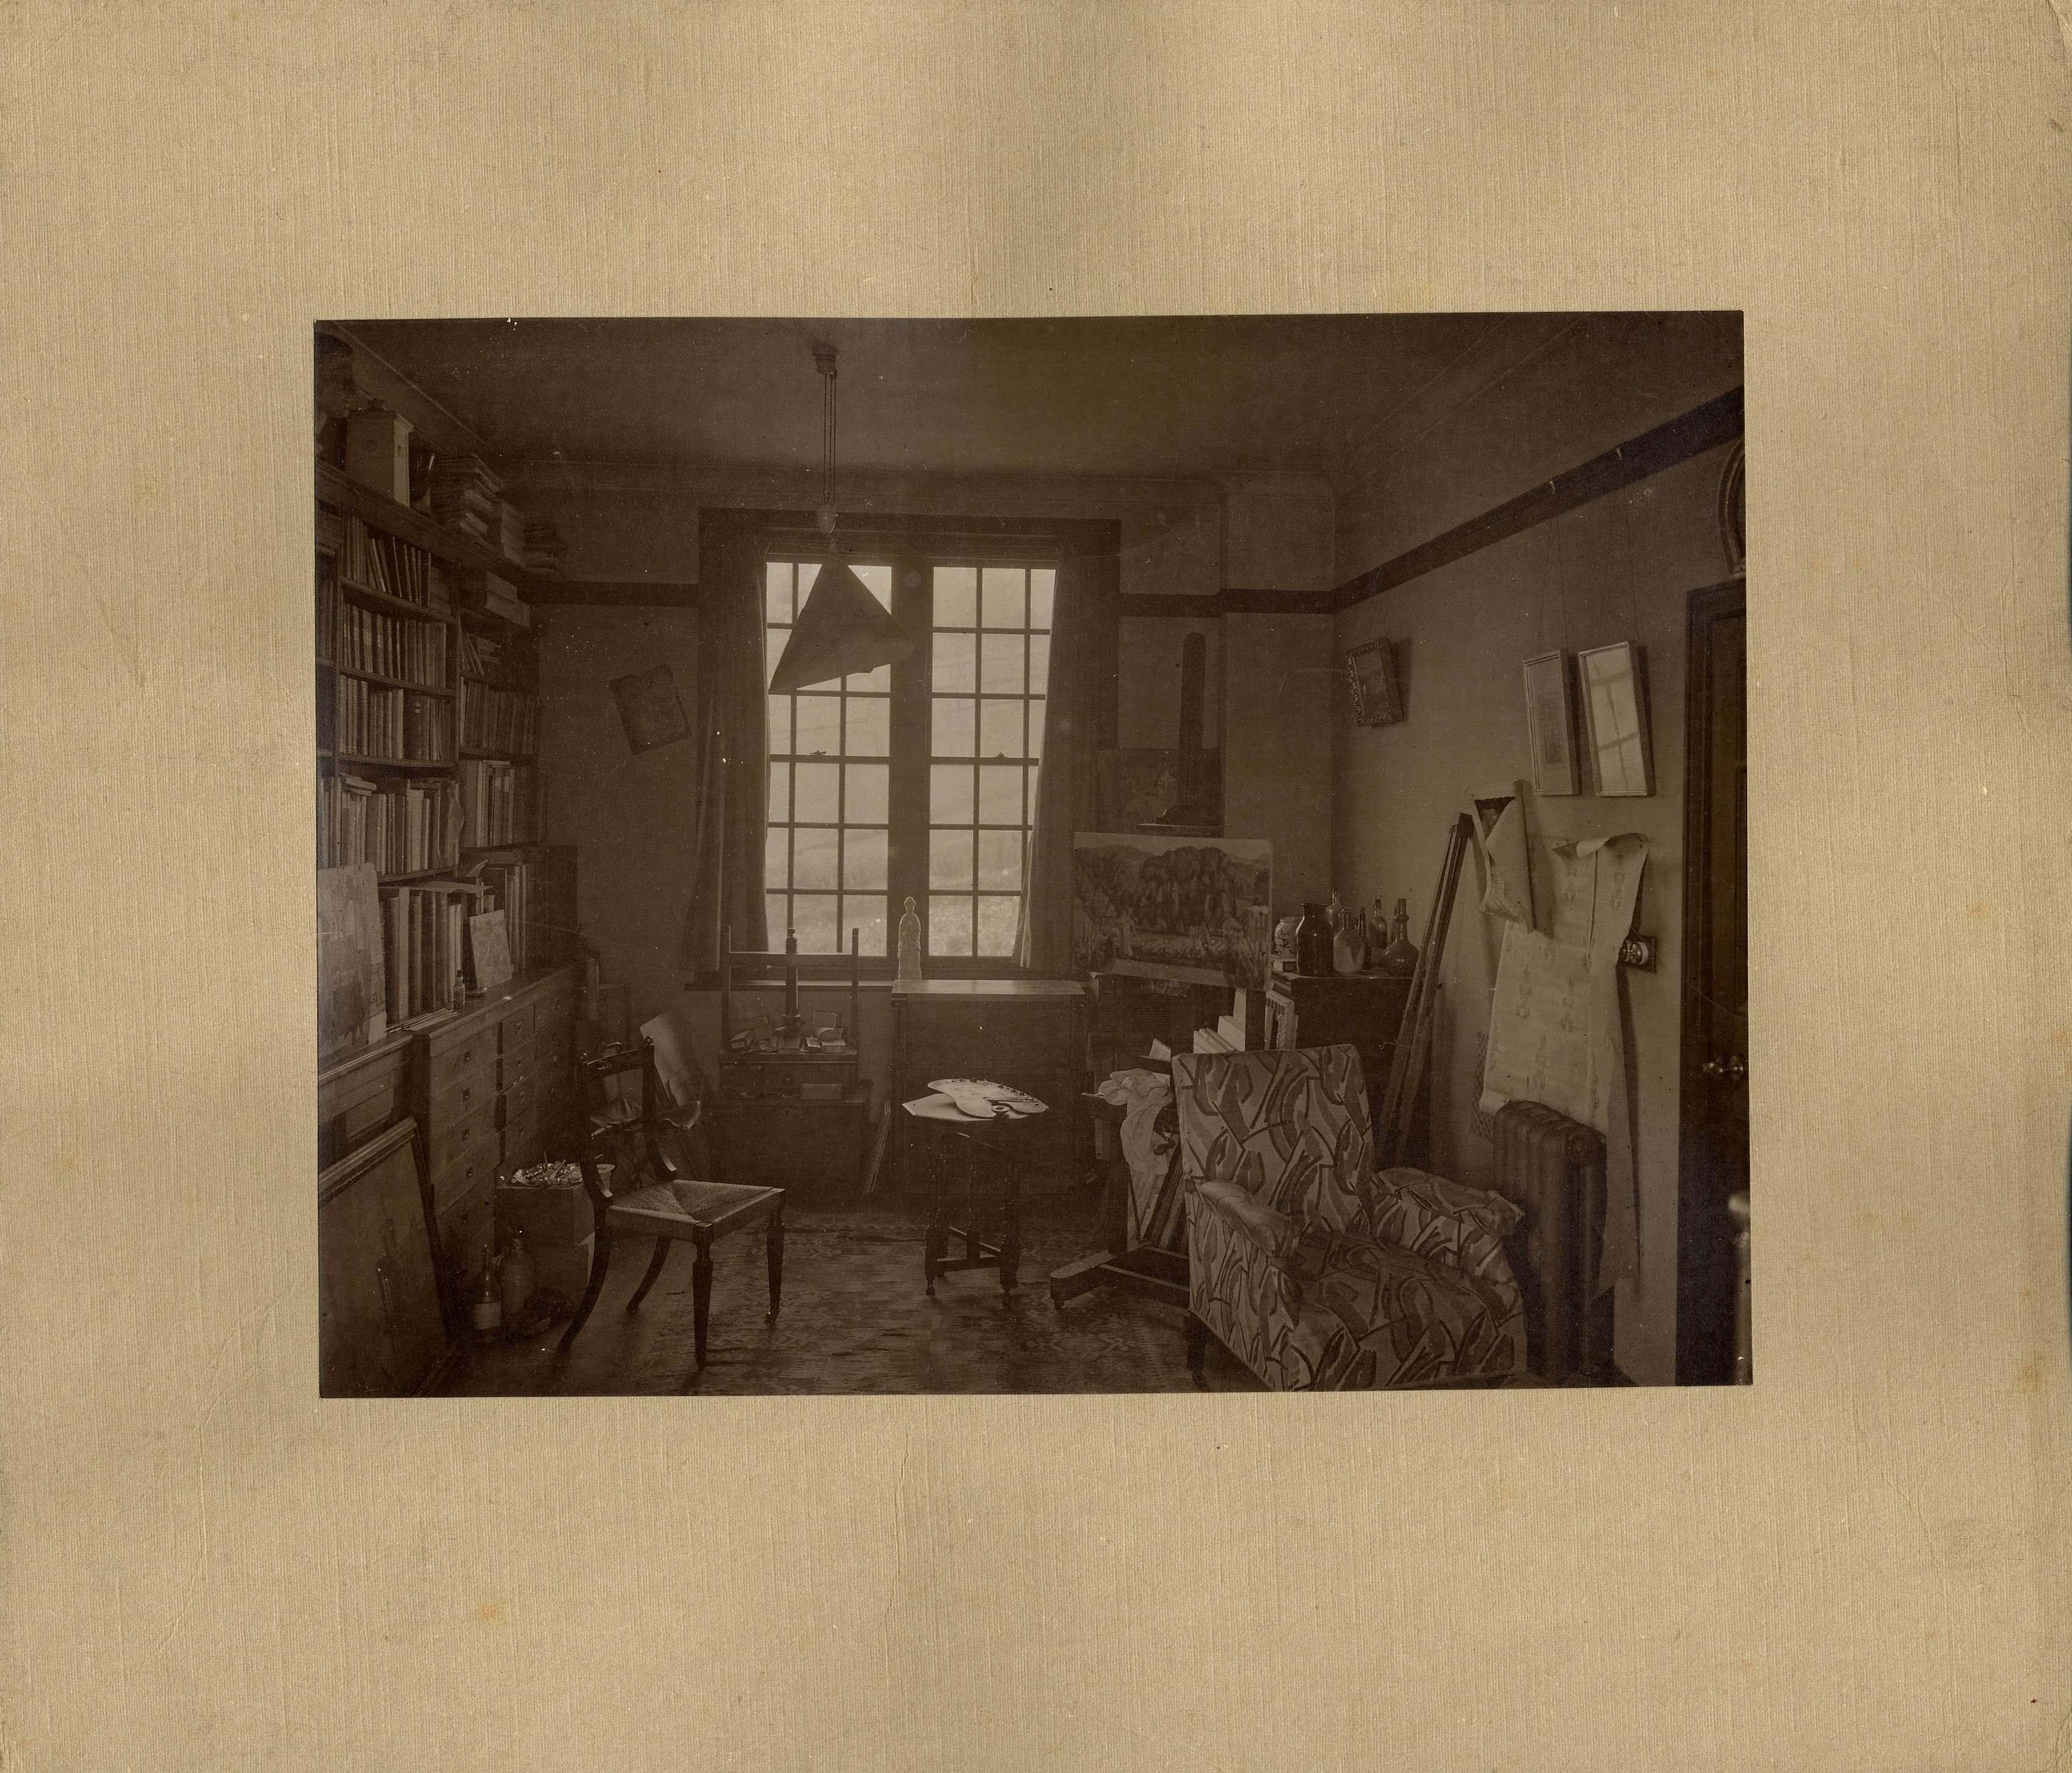 Interior photograph of Durbins, taken by A.C. Cooper and Co., King St., London, 1913-19. [REF/6/9]